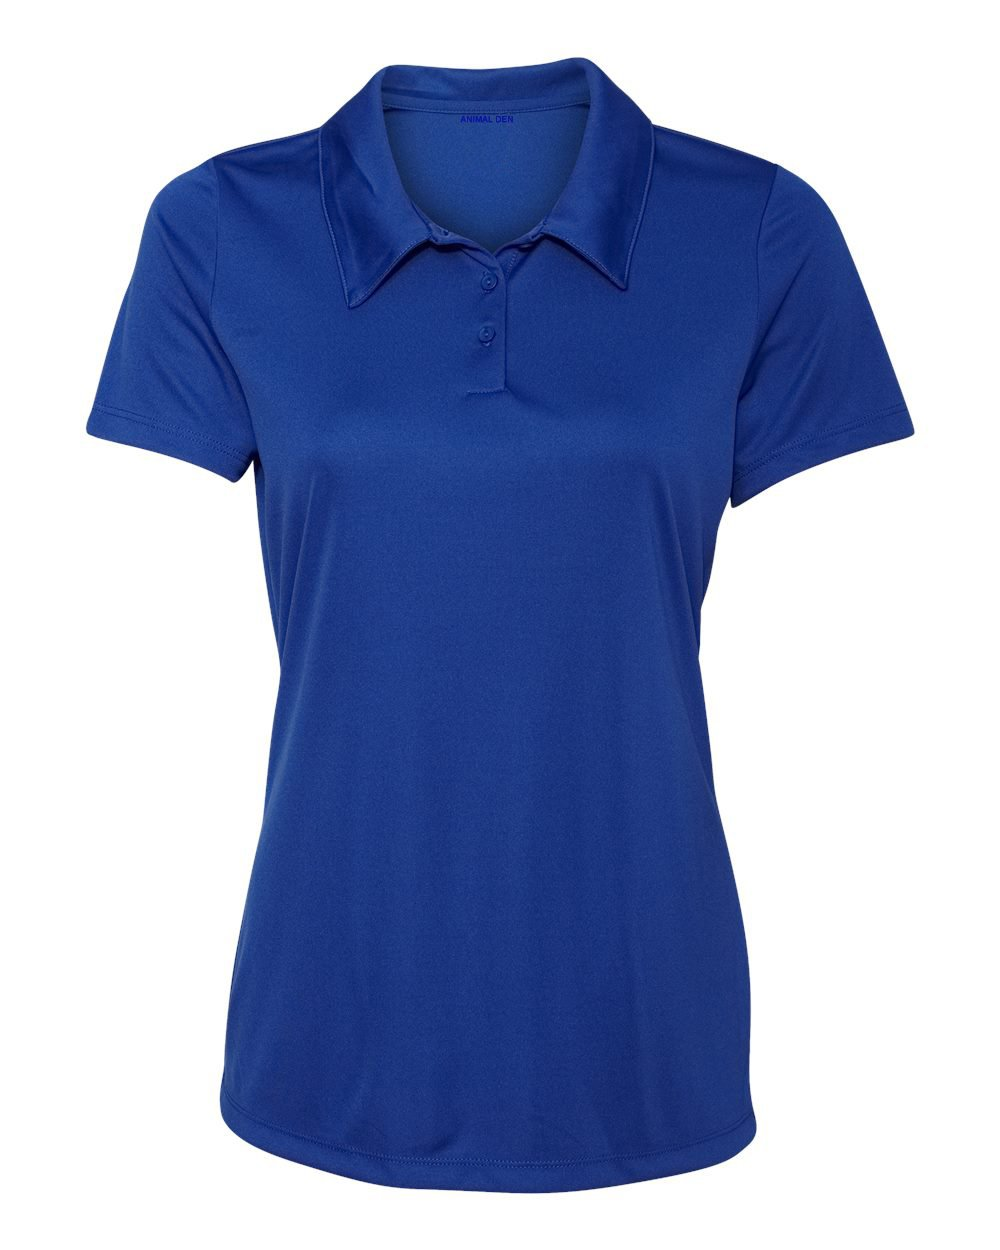 Women's Dry-Fit Golf Polo Shirts 3-Button Golf Polo's in 20 Colors XS-3XL Shirt ROYAL-XS